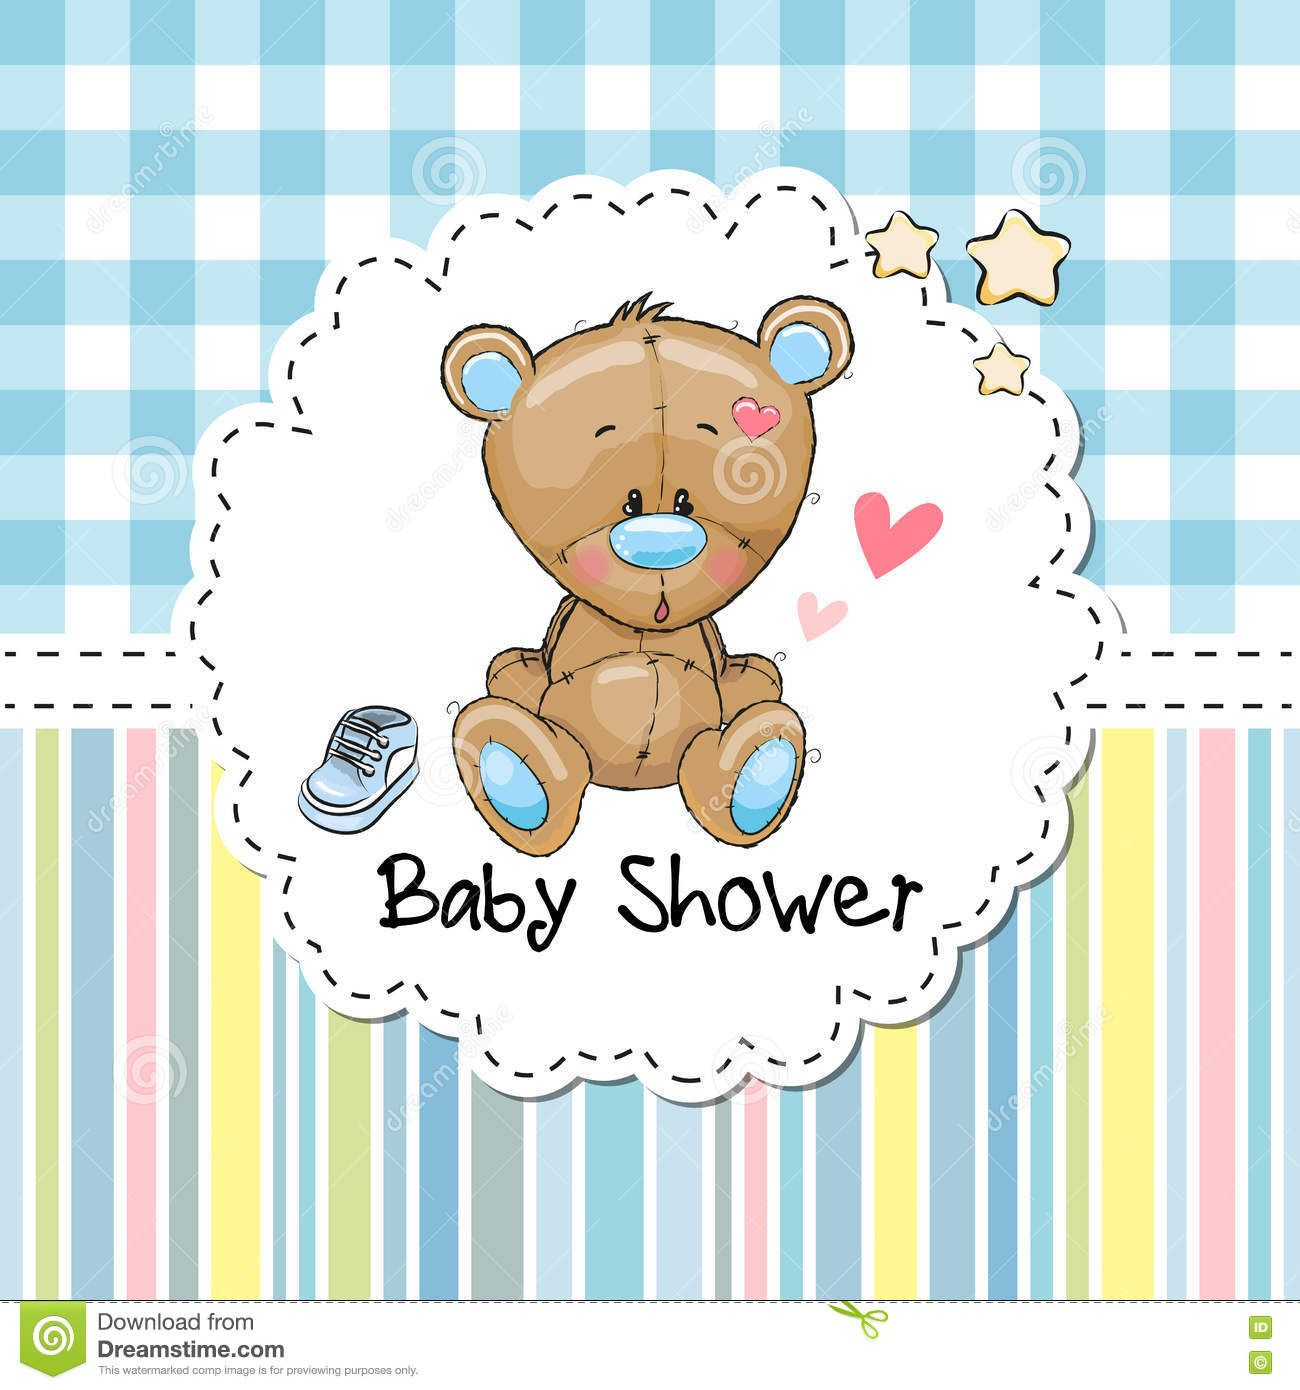 Pin by auxi cruz on ideas pinterest baby shower greetings baby shower greeting card with cute cartoon unicorn girl comprar estea imagem vetorial de banco no shutterstock e encontrar outras imagens kristyandbryce Image collections